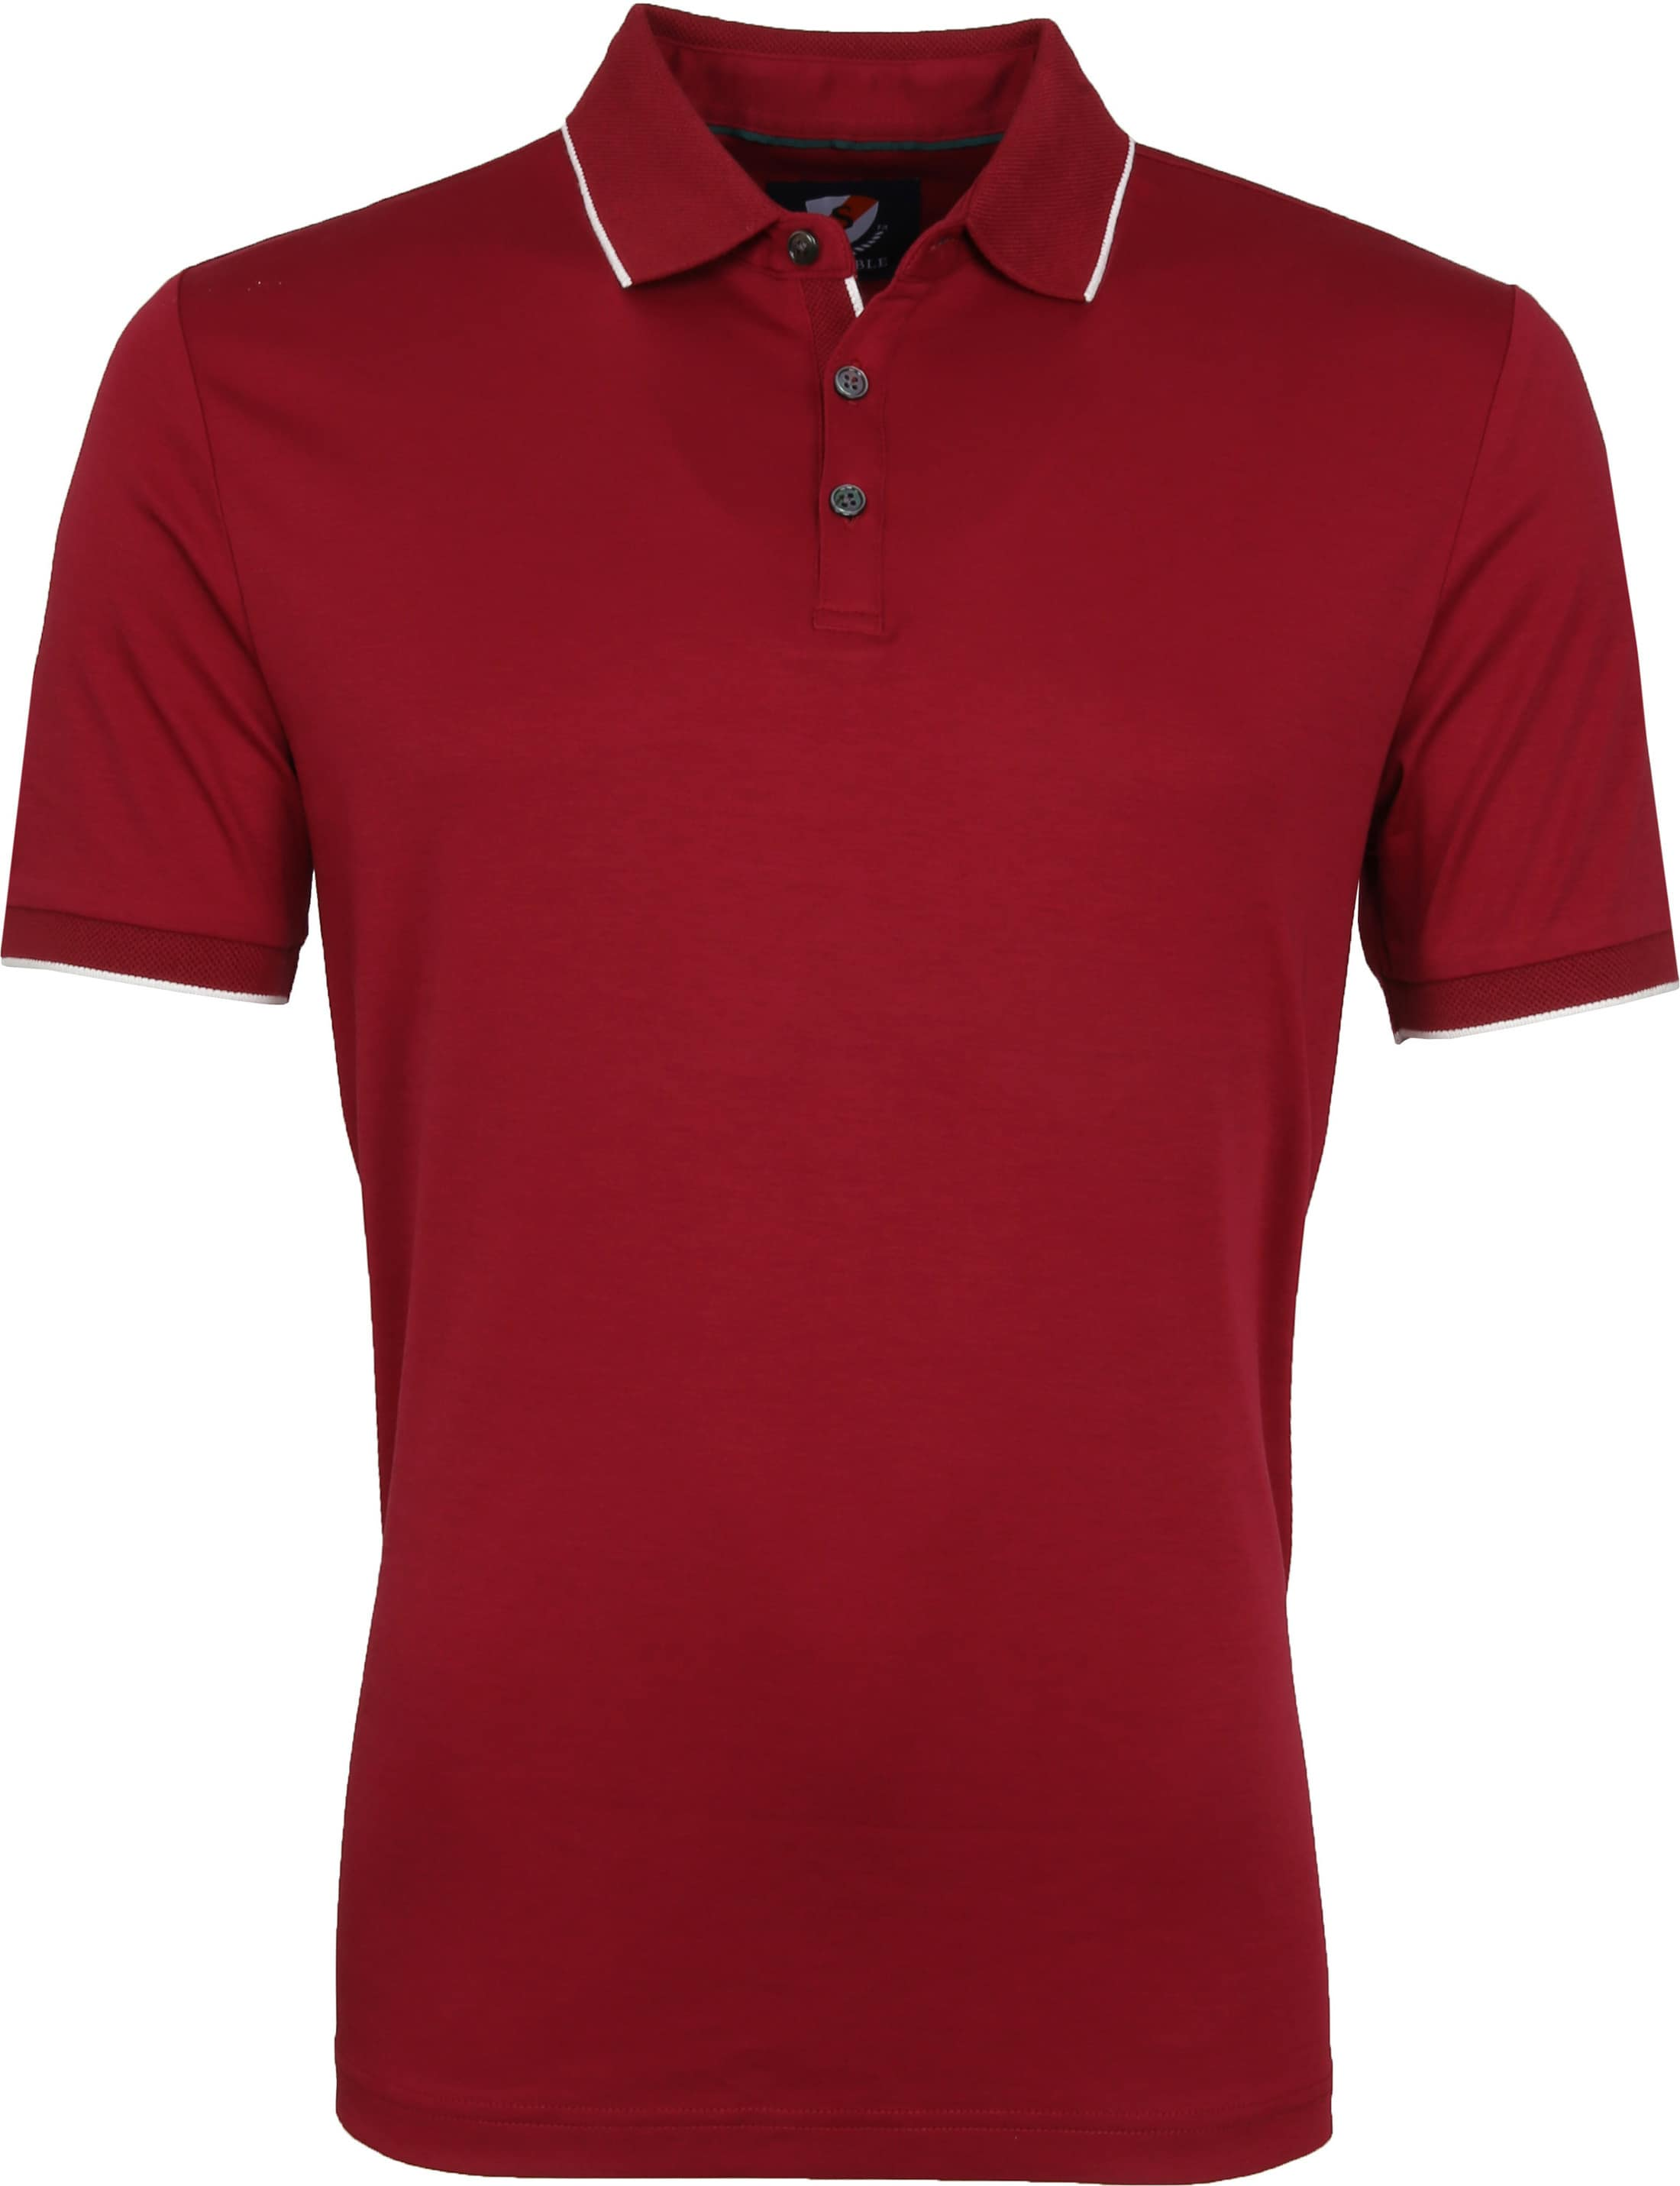 Suitable Liquid Poloshirt Burgund foto 0